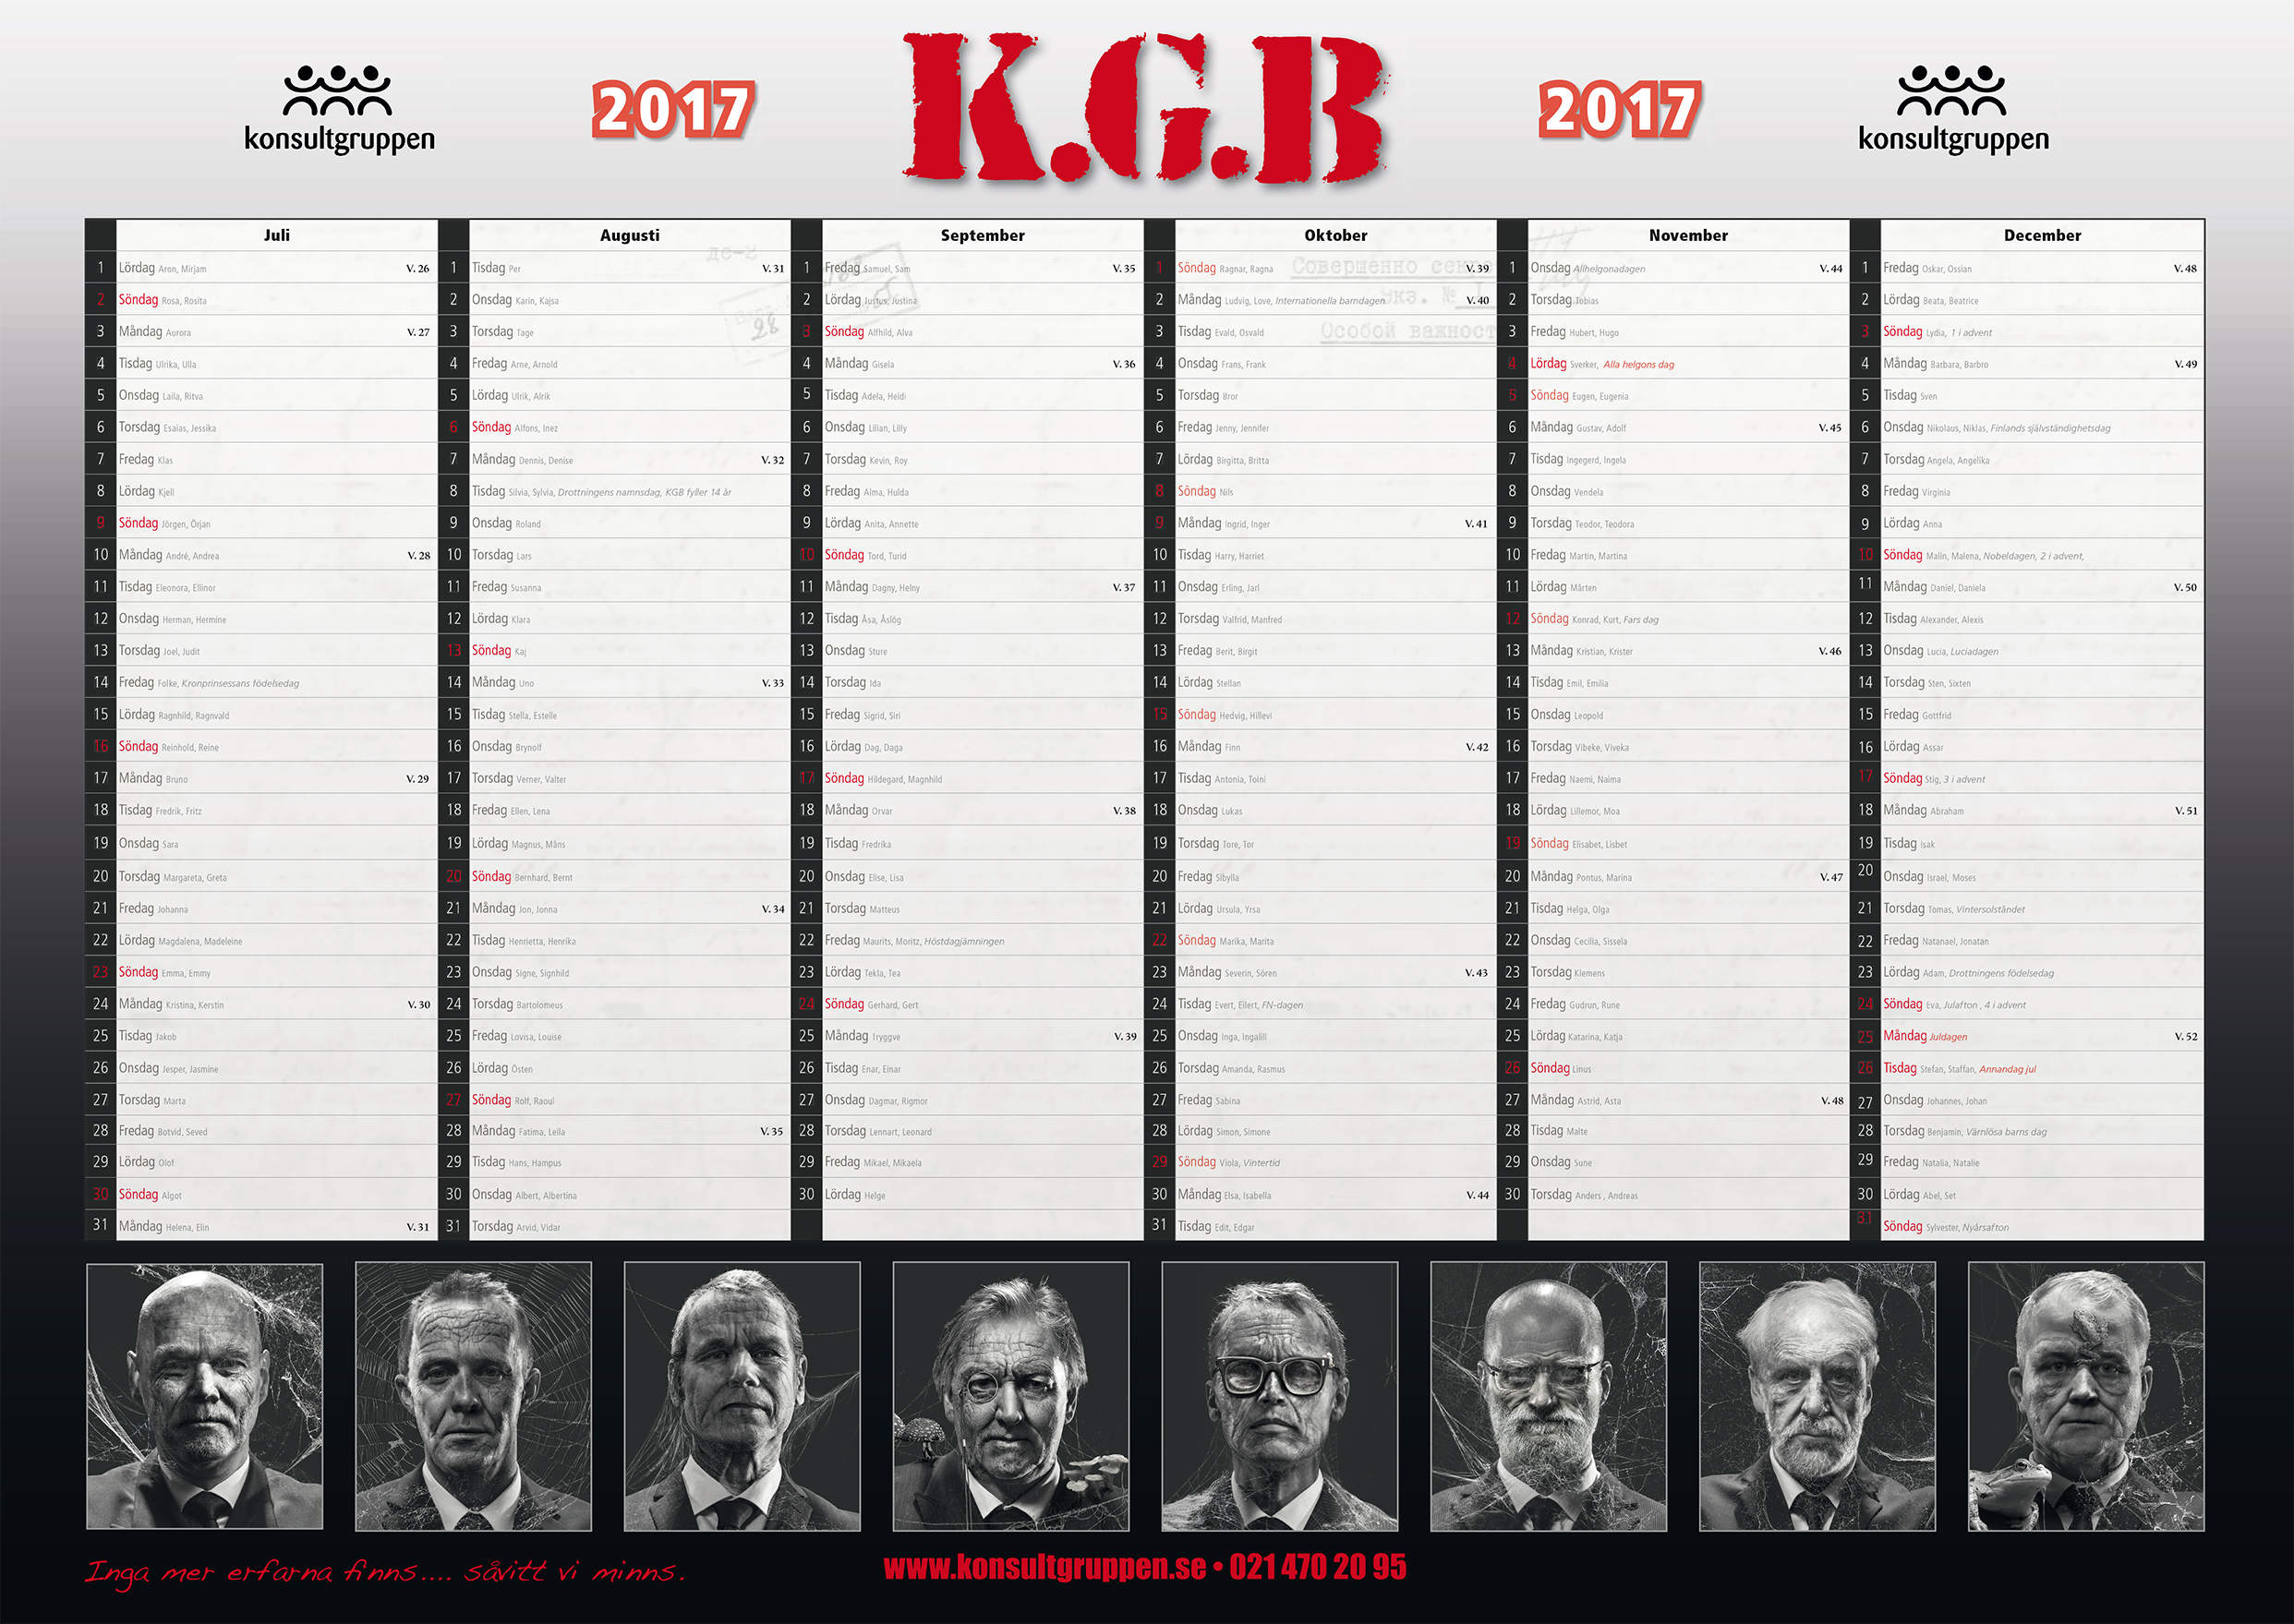 KGB_Kalender_2017_Jul-Dec_Web.jpg